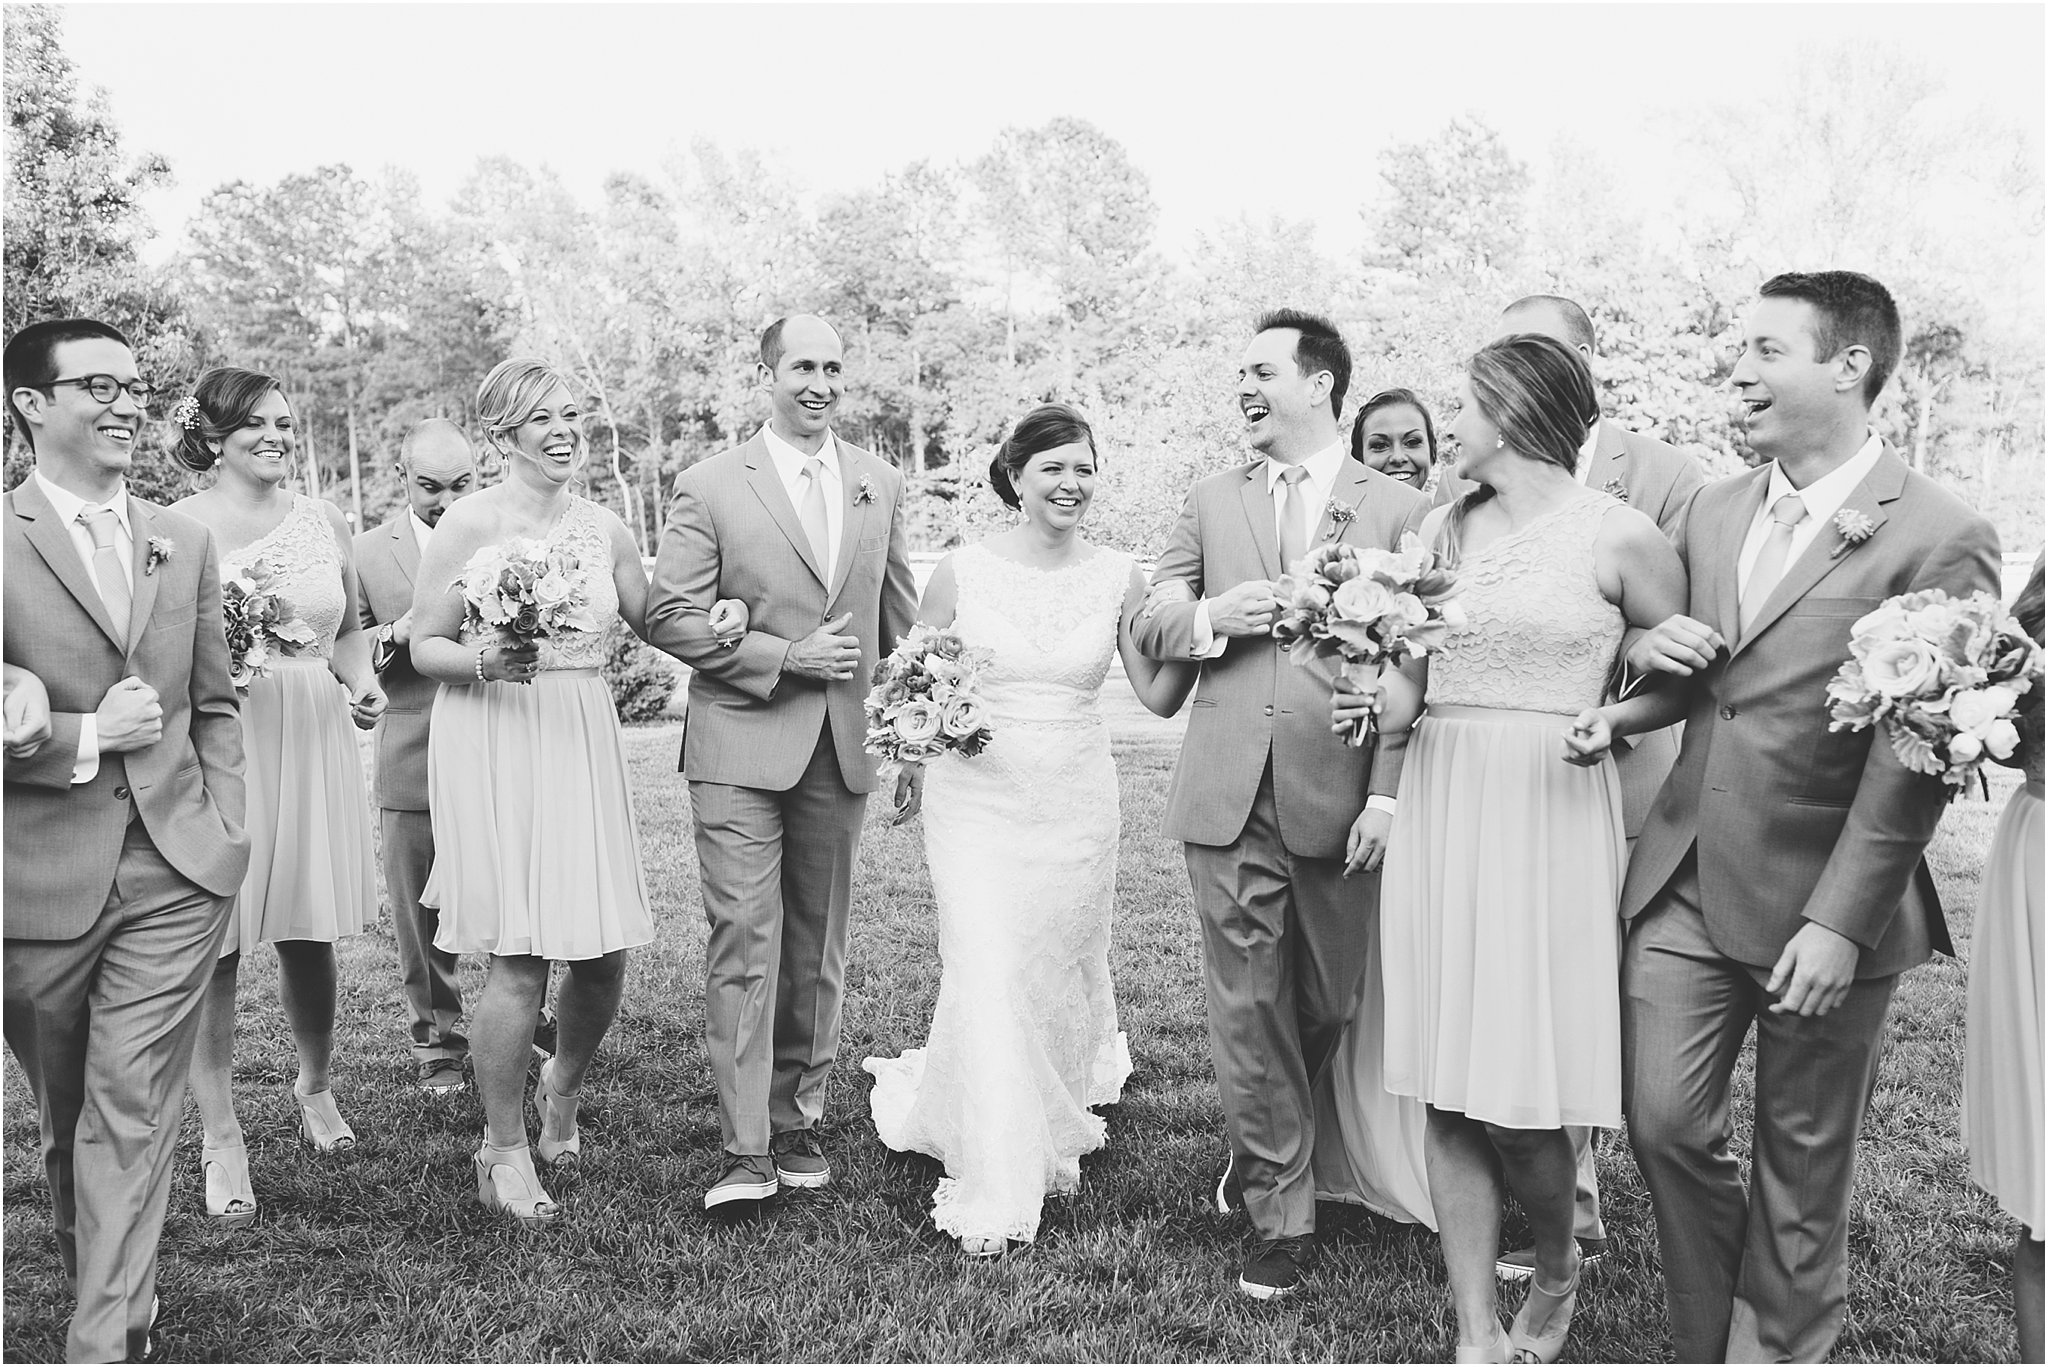 jessica_ryan_photography_holly_ridge_manor_wedding_roost_flowers_jamie_leigh_events_dhalia_edwards_candid_vibrant_wedding_colors_1309